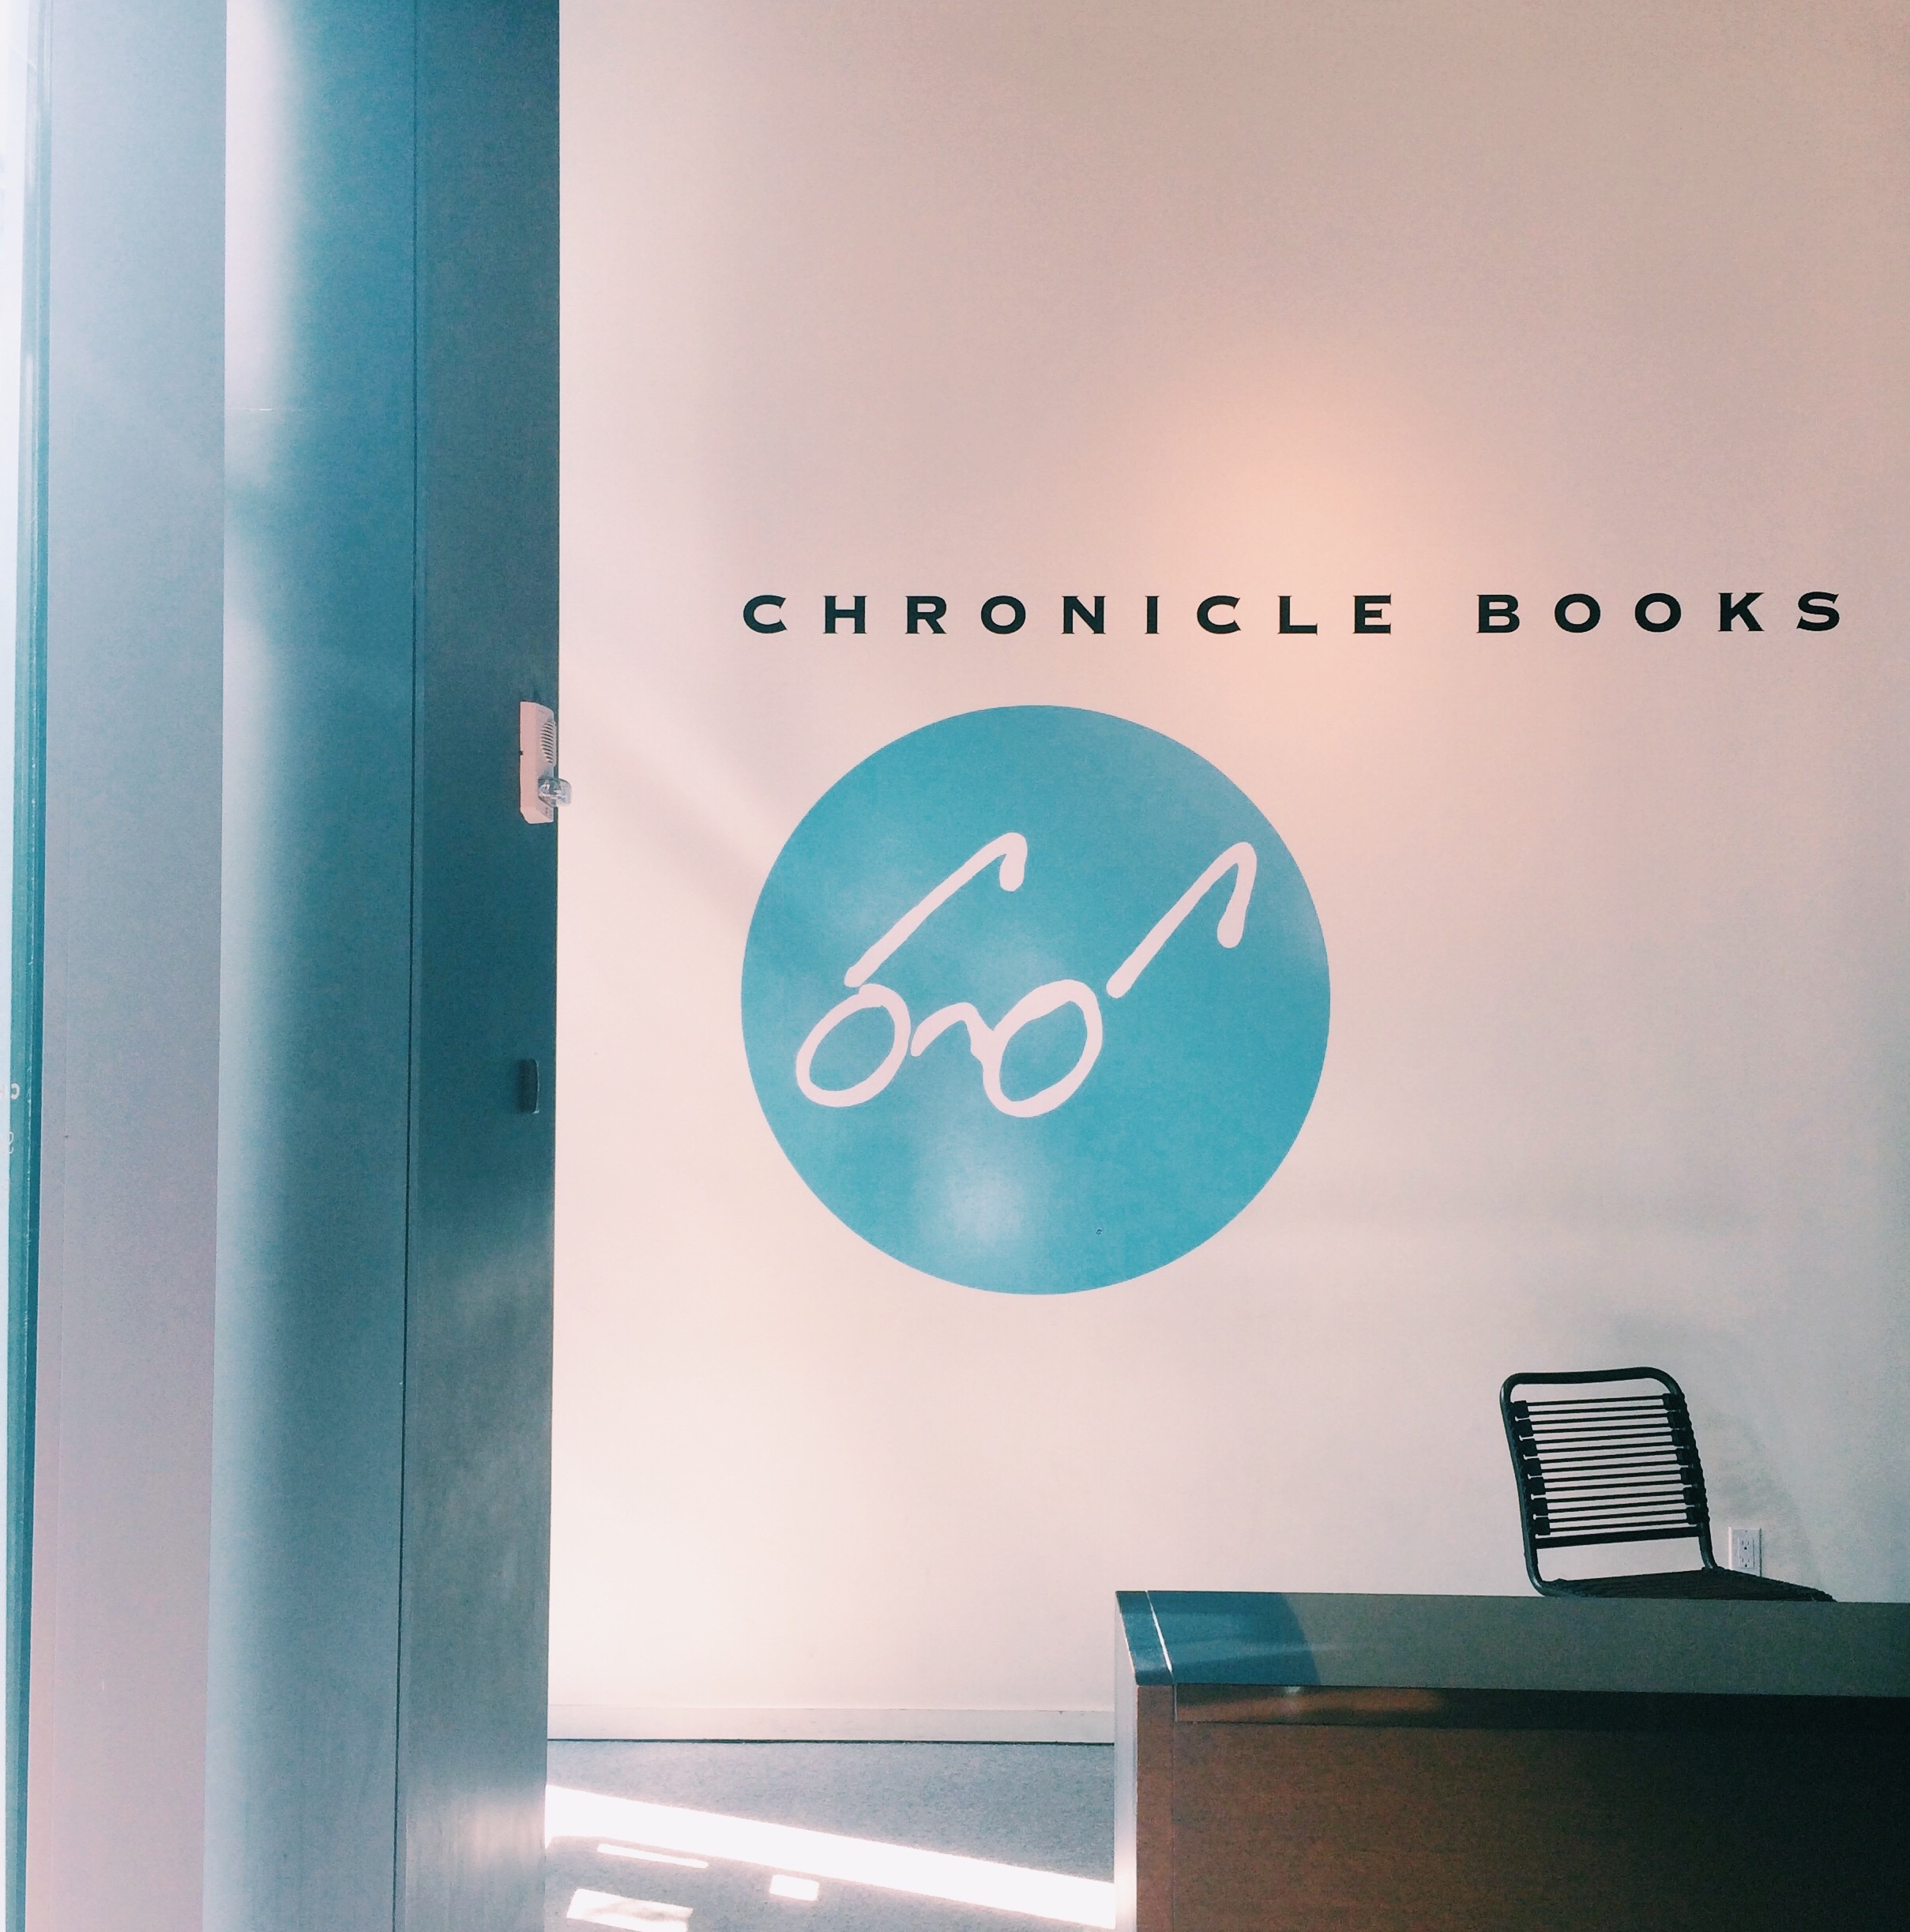 Chronicle Books in San Francisco